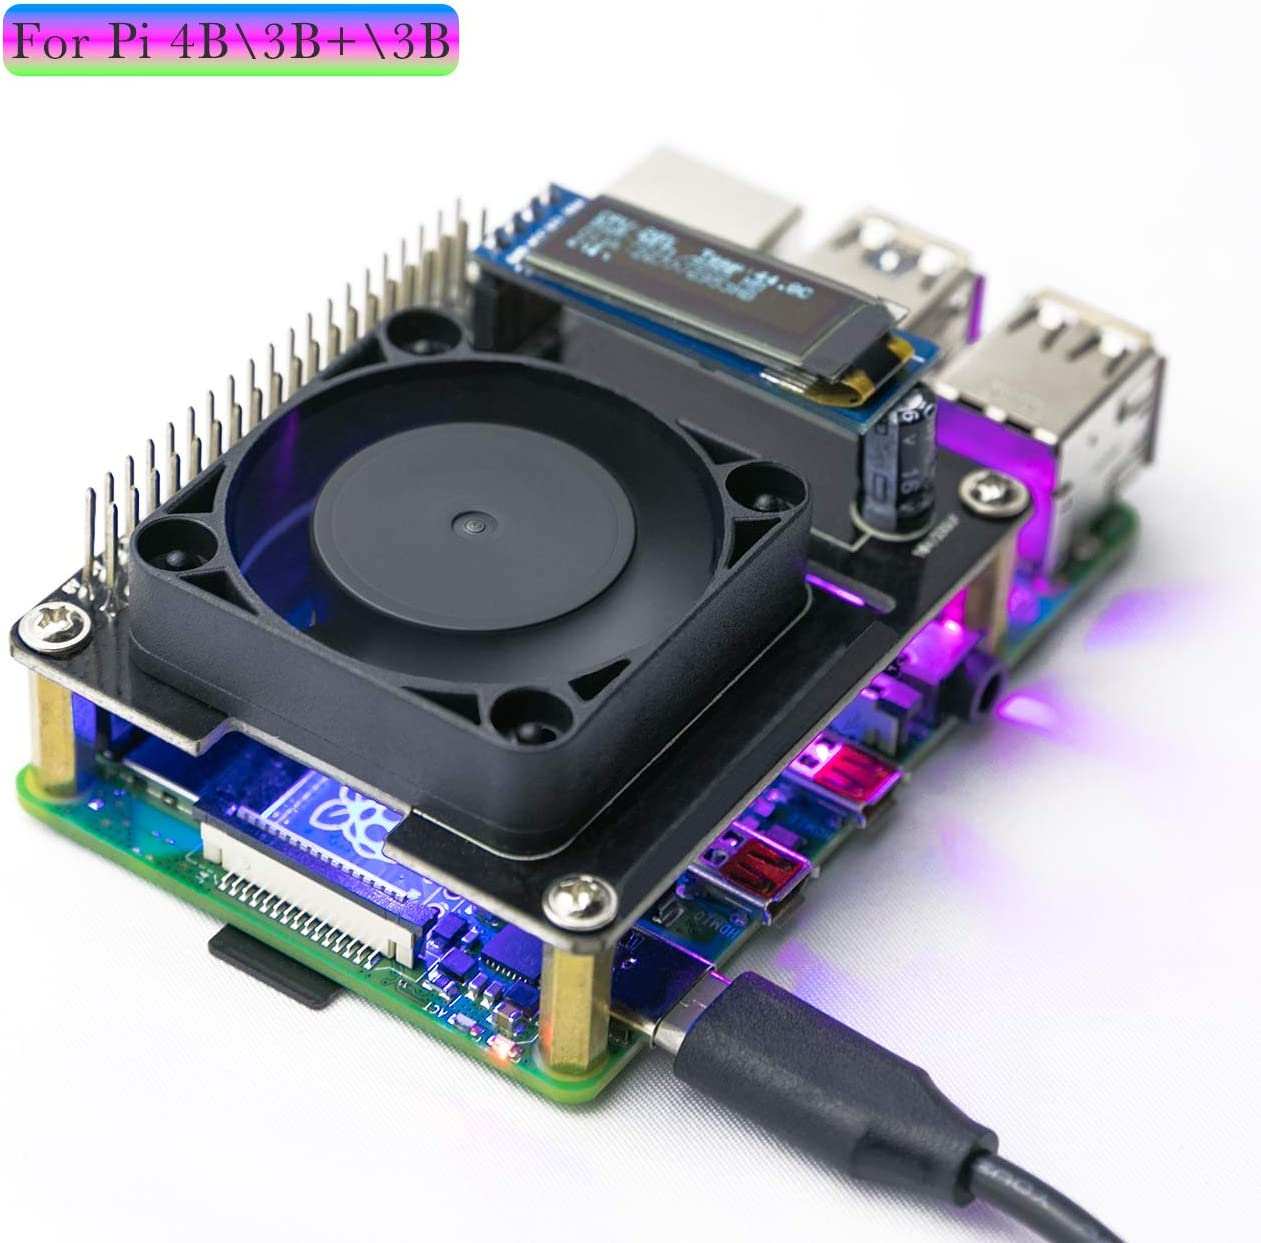 Yahboom Raspberry Pi 4B 3B+ 3B Cooling Fan Intelligent Temperature Control I2C OLED Display Programmable RGB Light(Quiet)